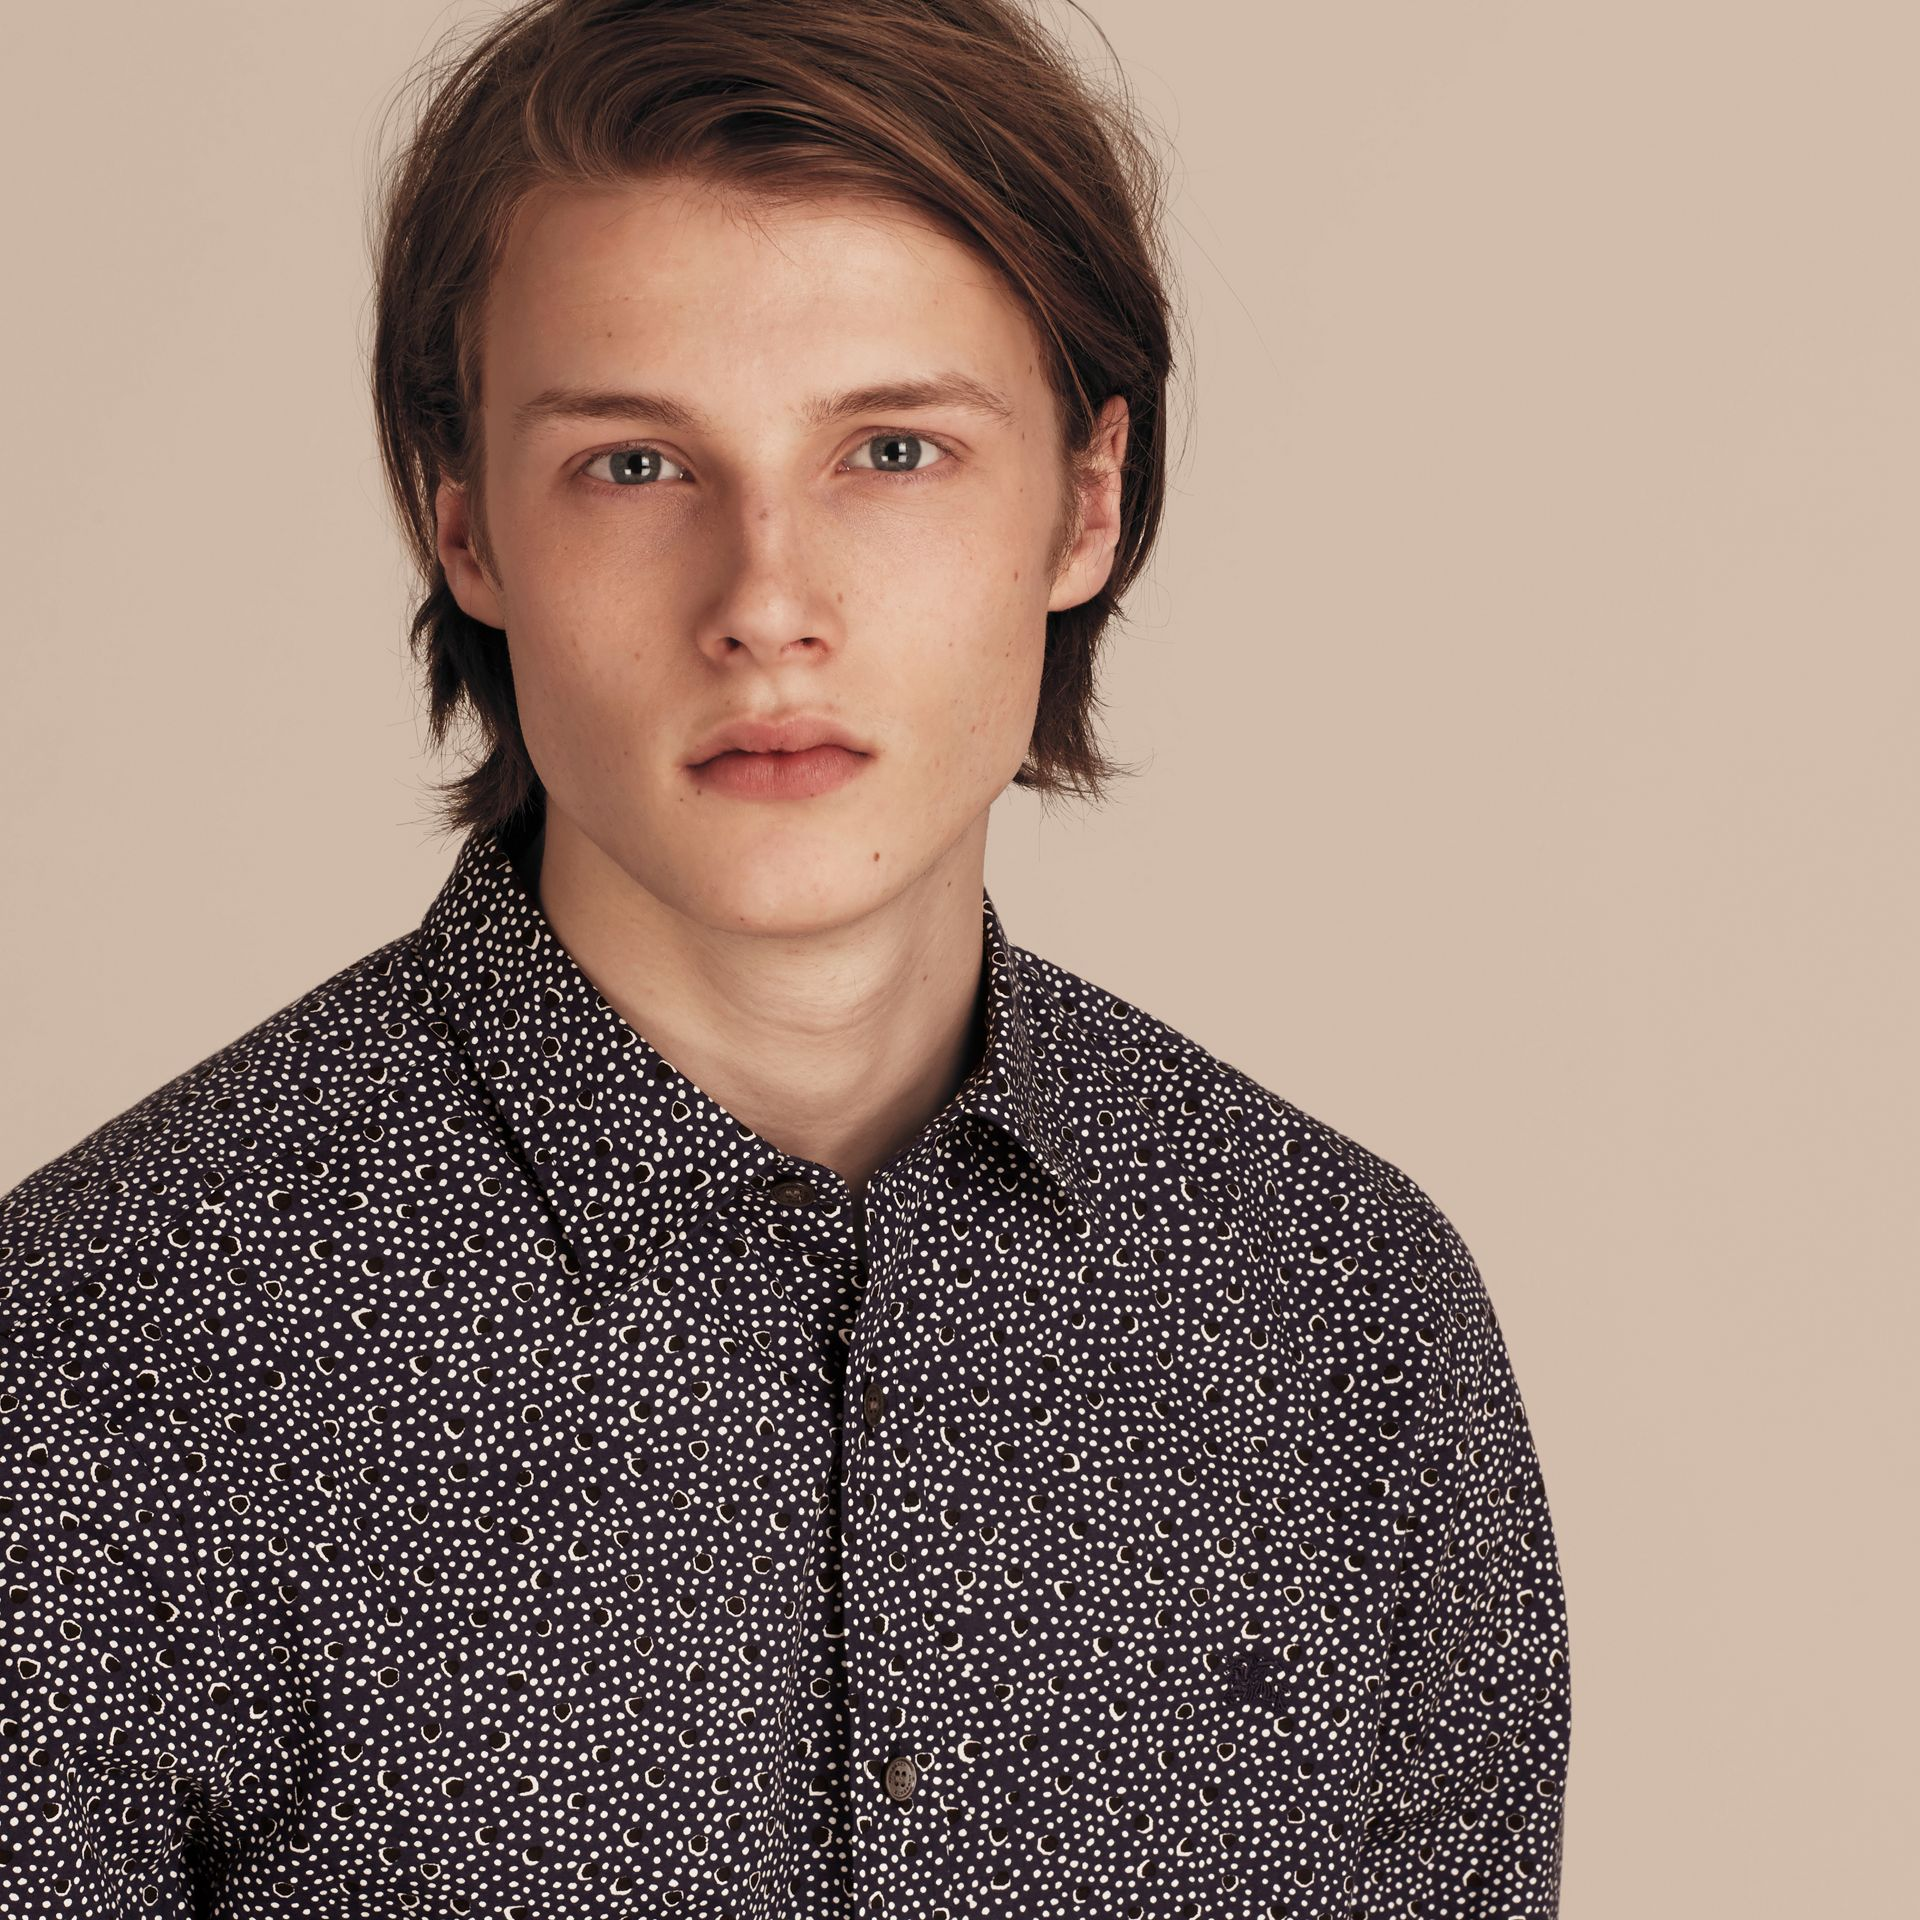 Navy Painterly Spot Print Cotton Shirt Navy - gallery image 4